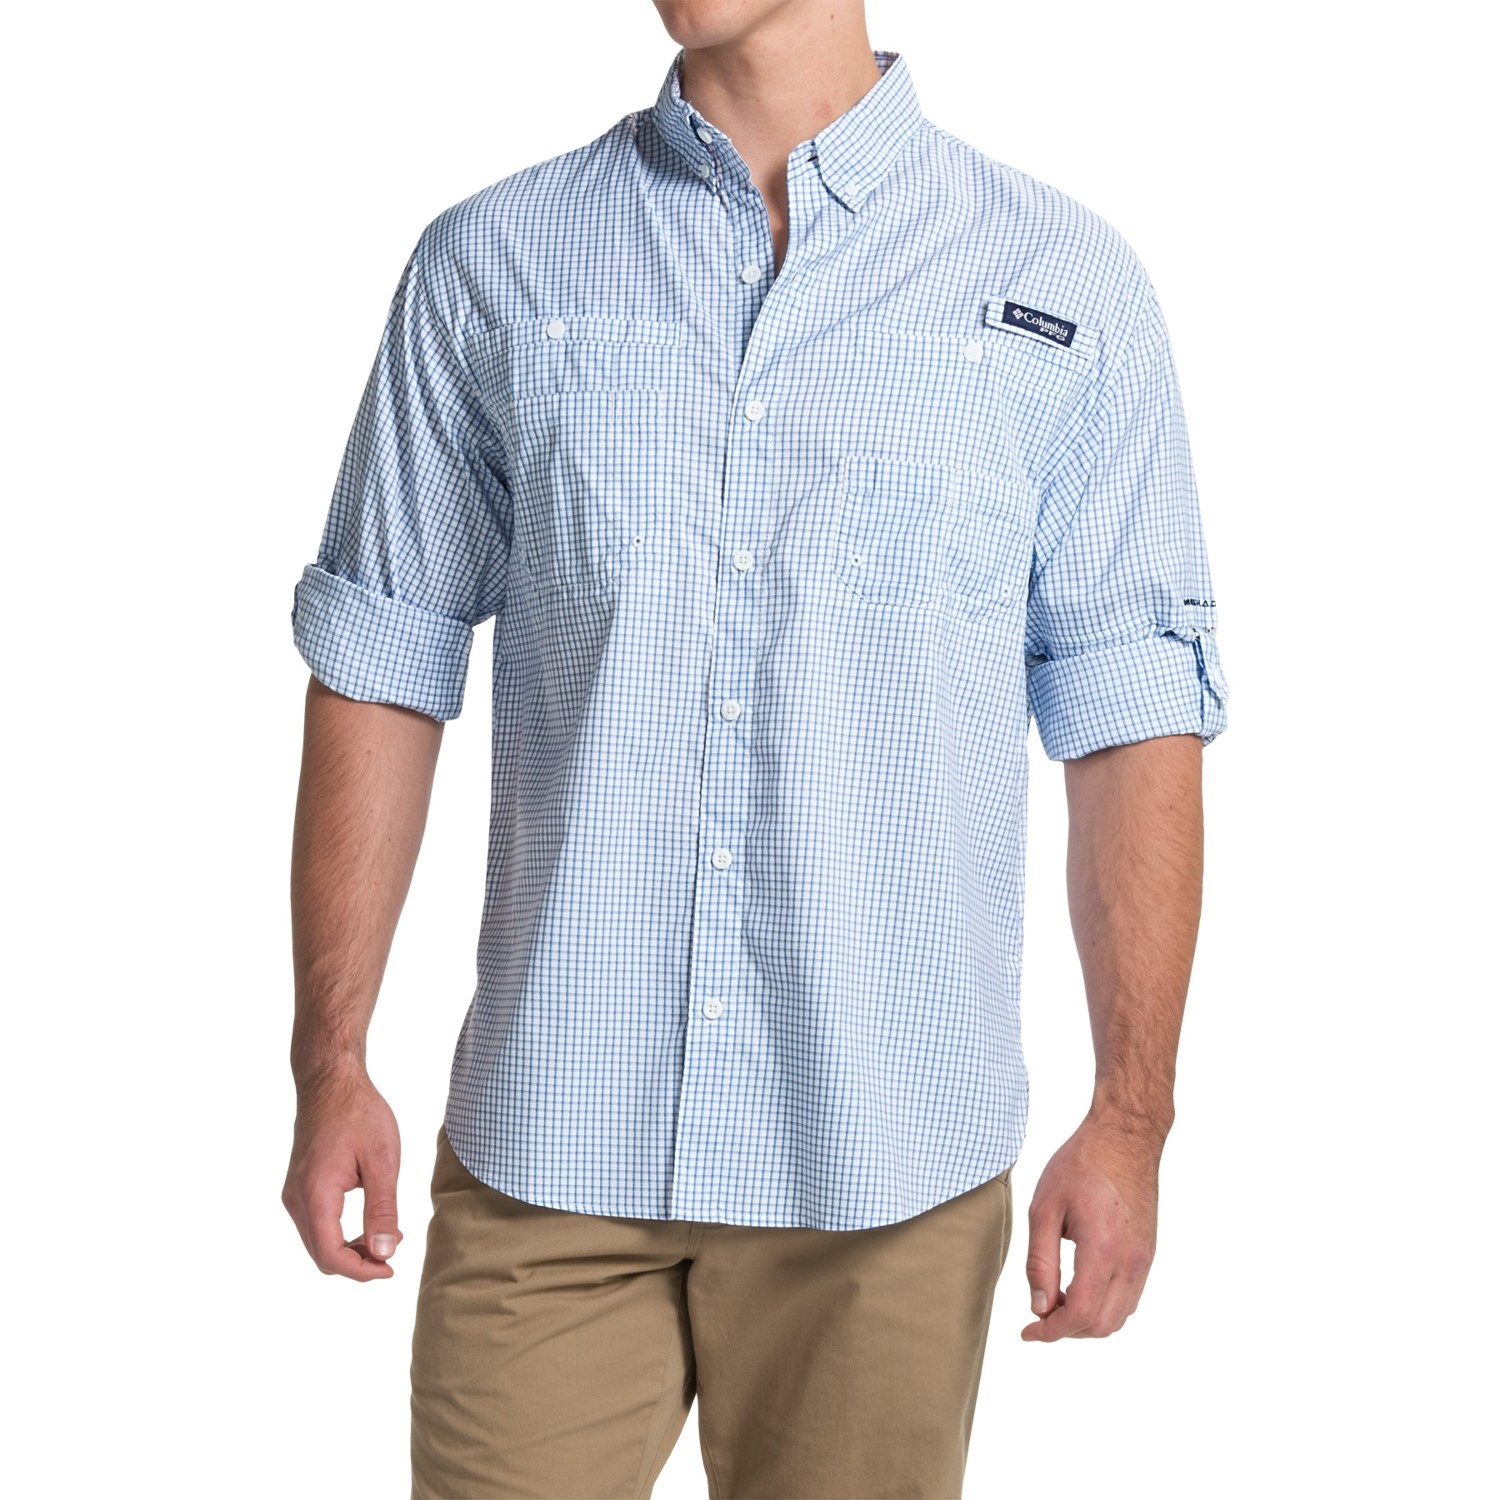 Columbia sportswear pfg super tamiami fishing shirt for men for What is a pfg shirt